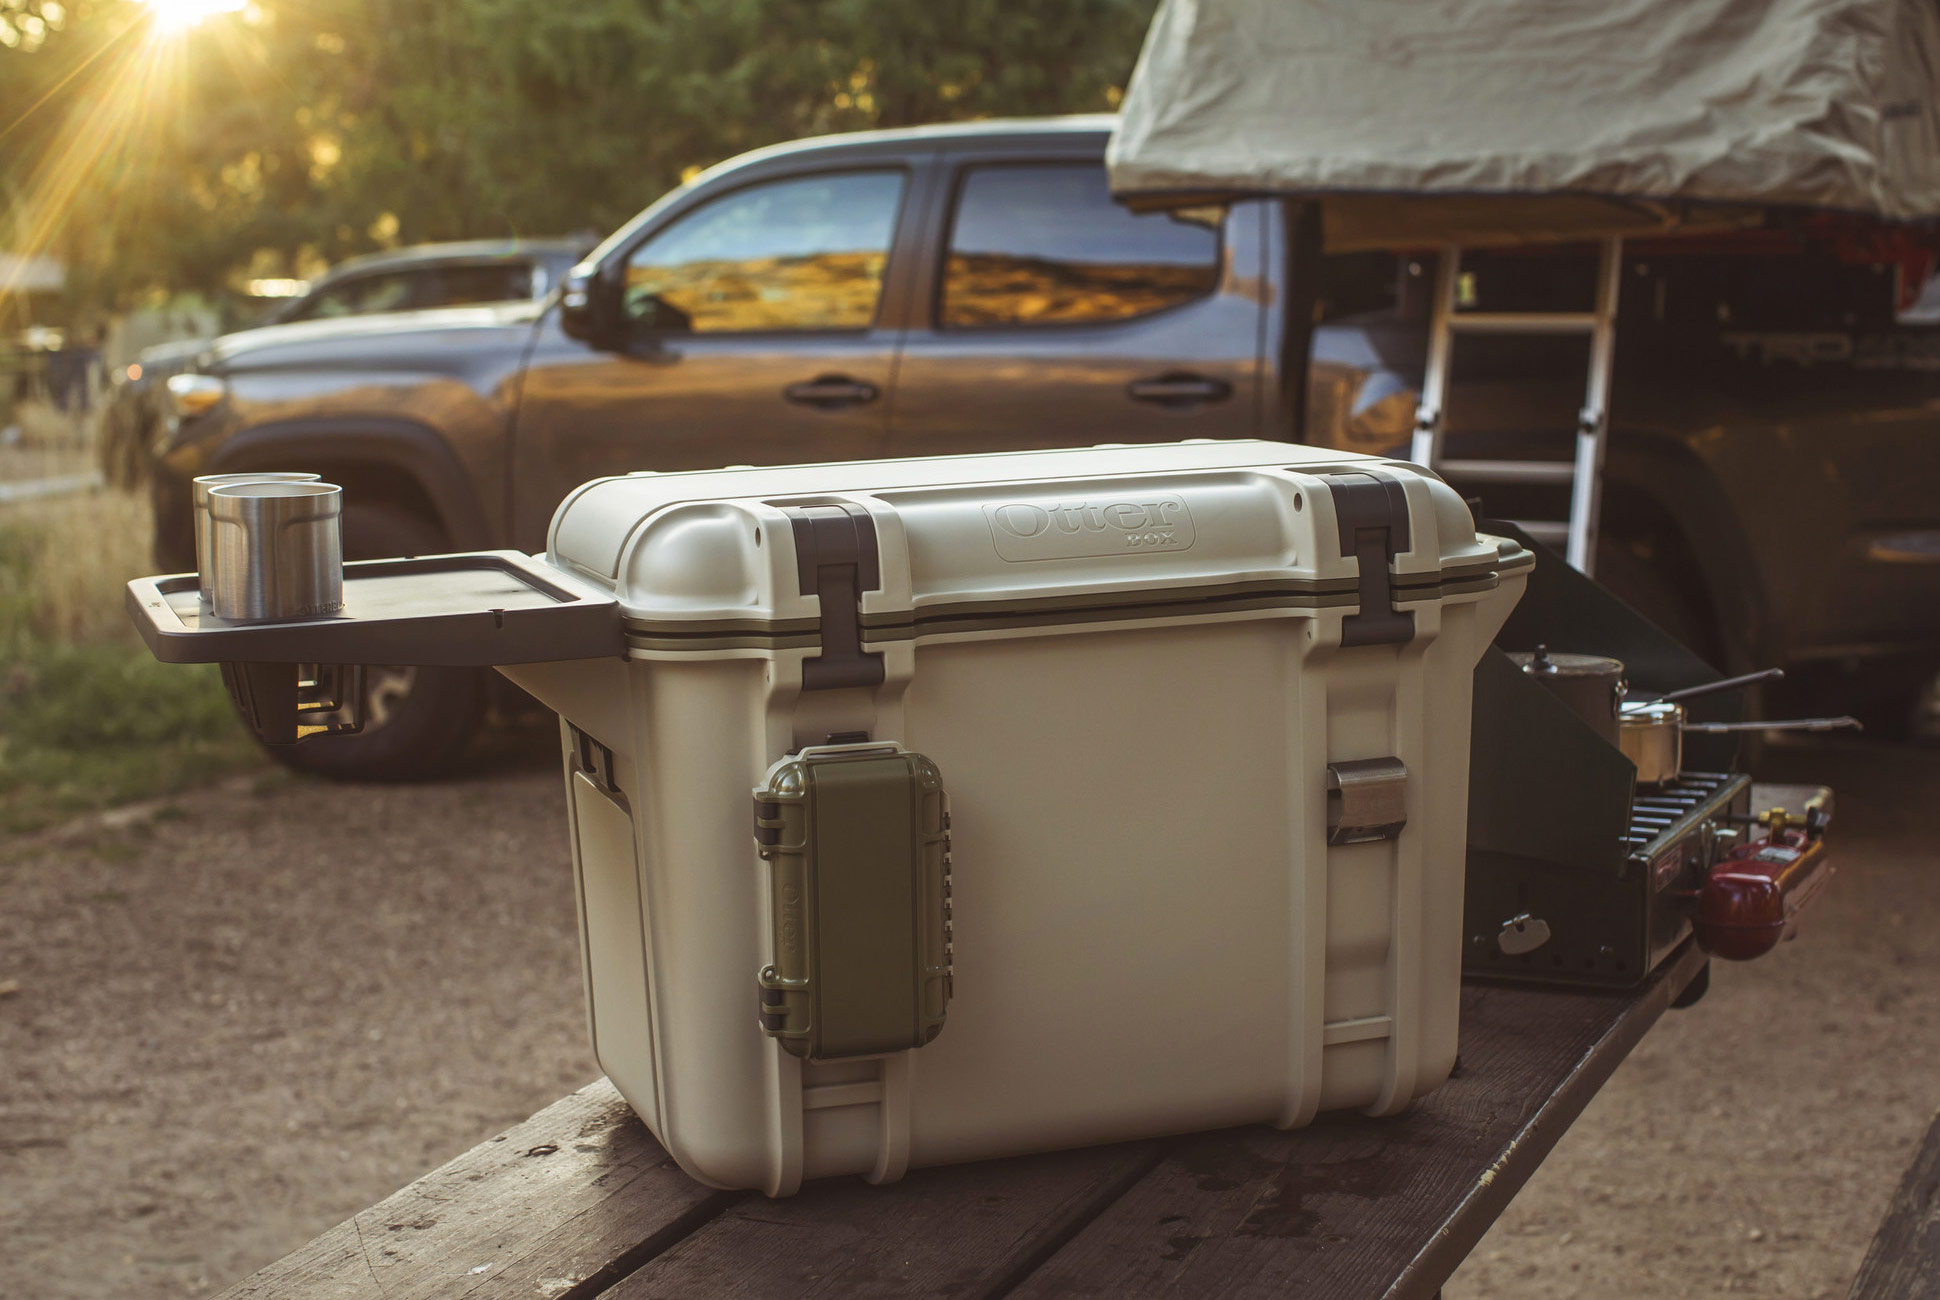 9 Power Coolers To Have For Any Summer Outdoors Occassion